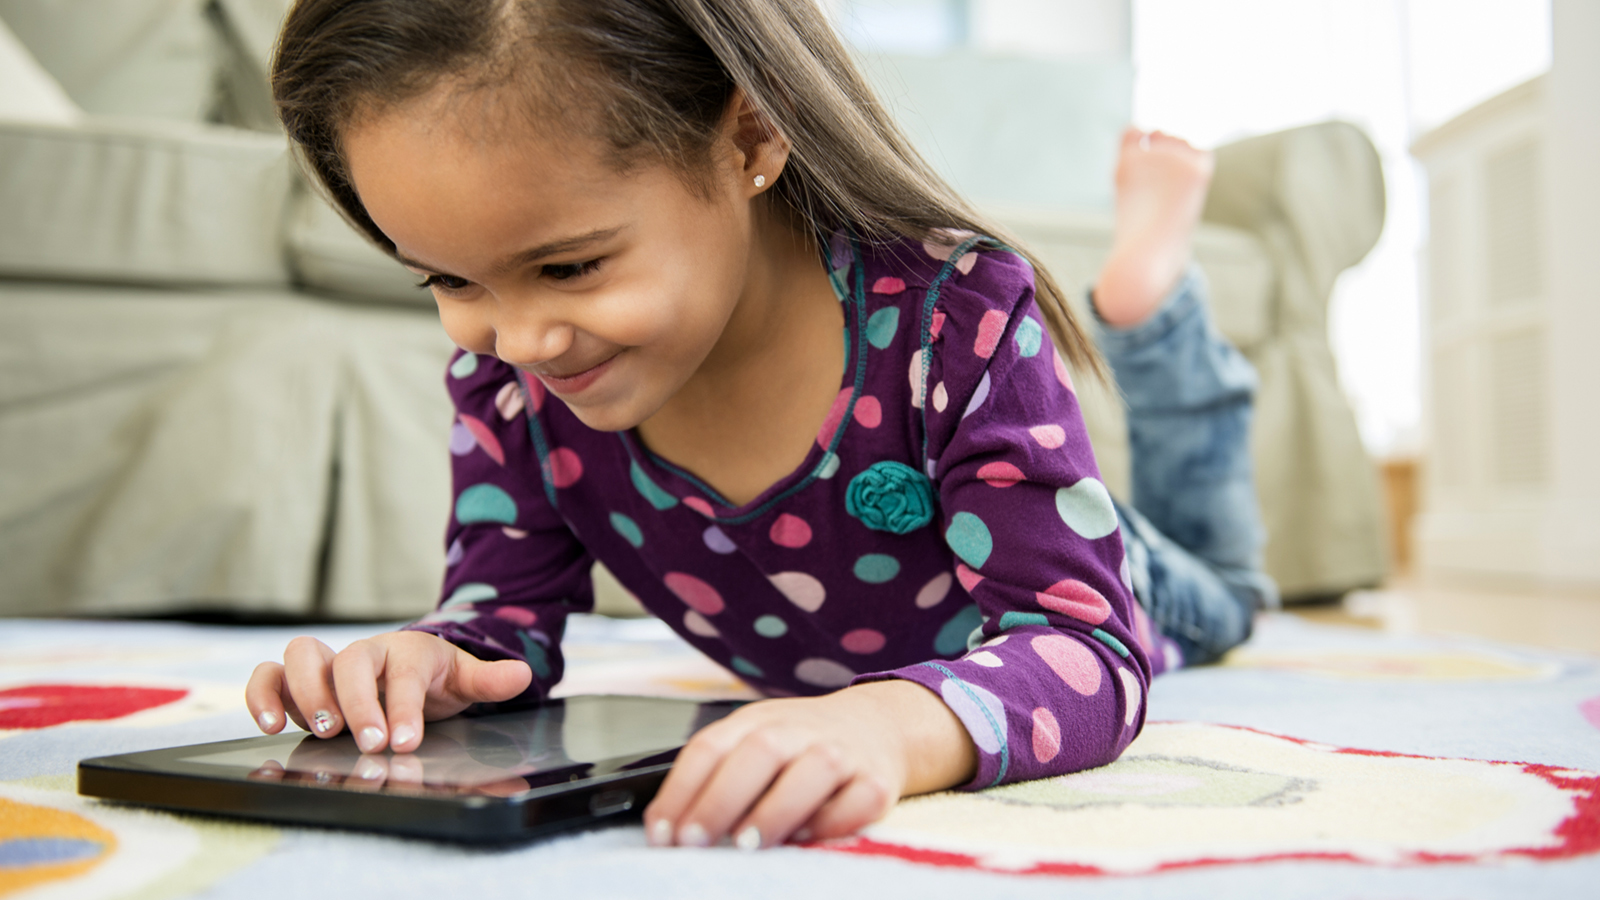 Too Much Screen Time? Here Are 4 Ways to Maximize It for Learning